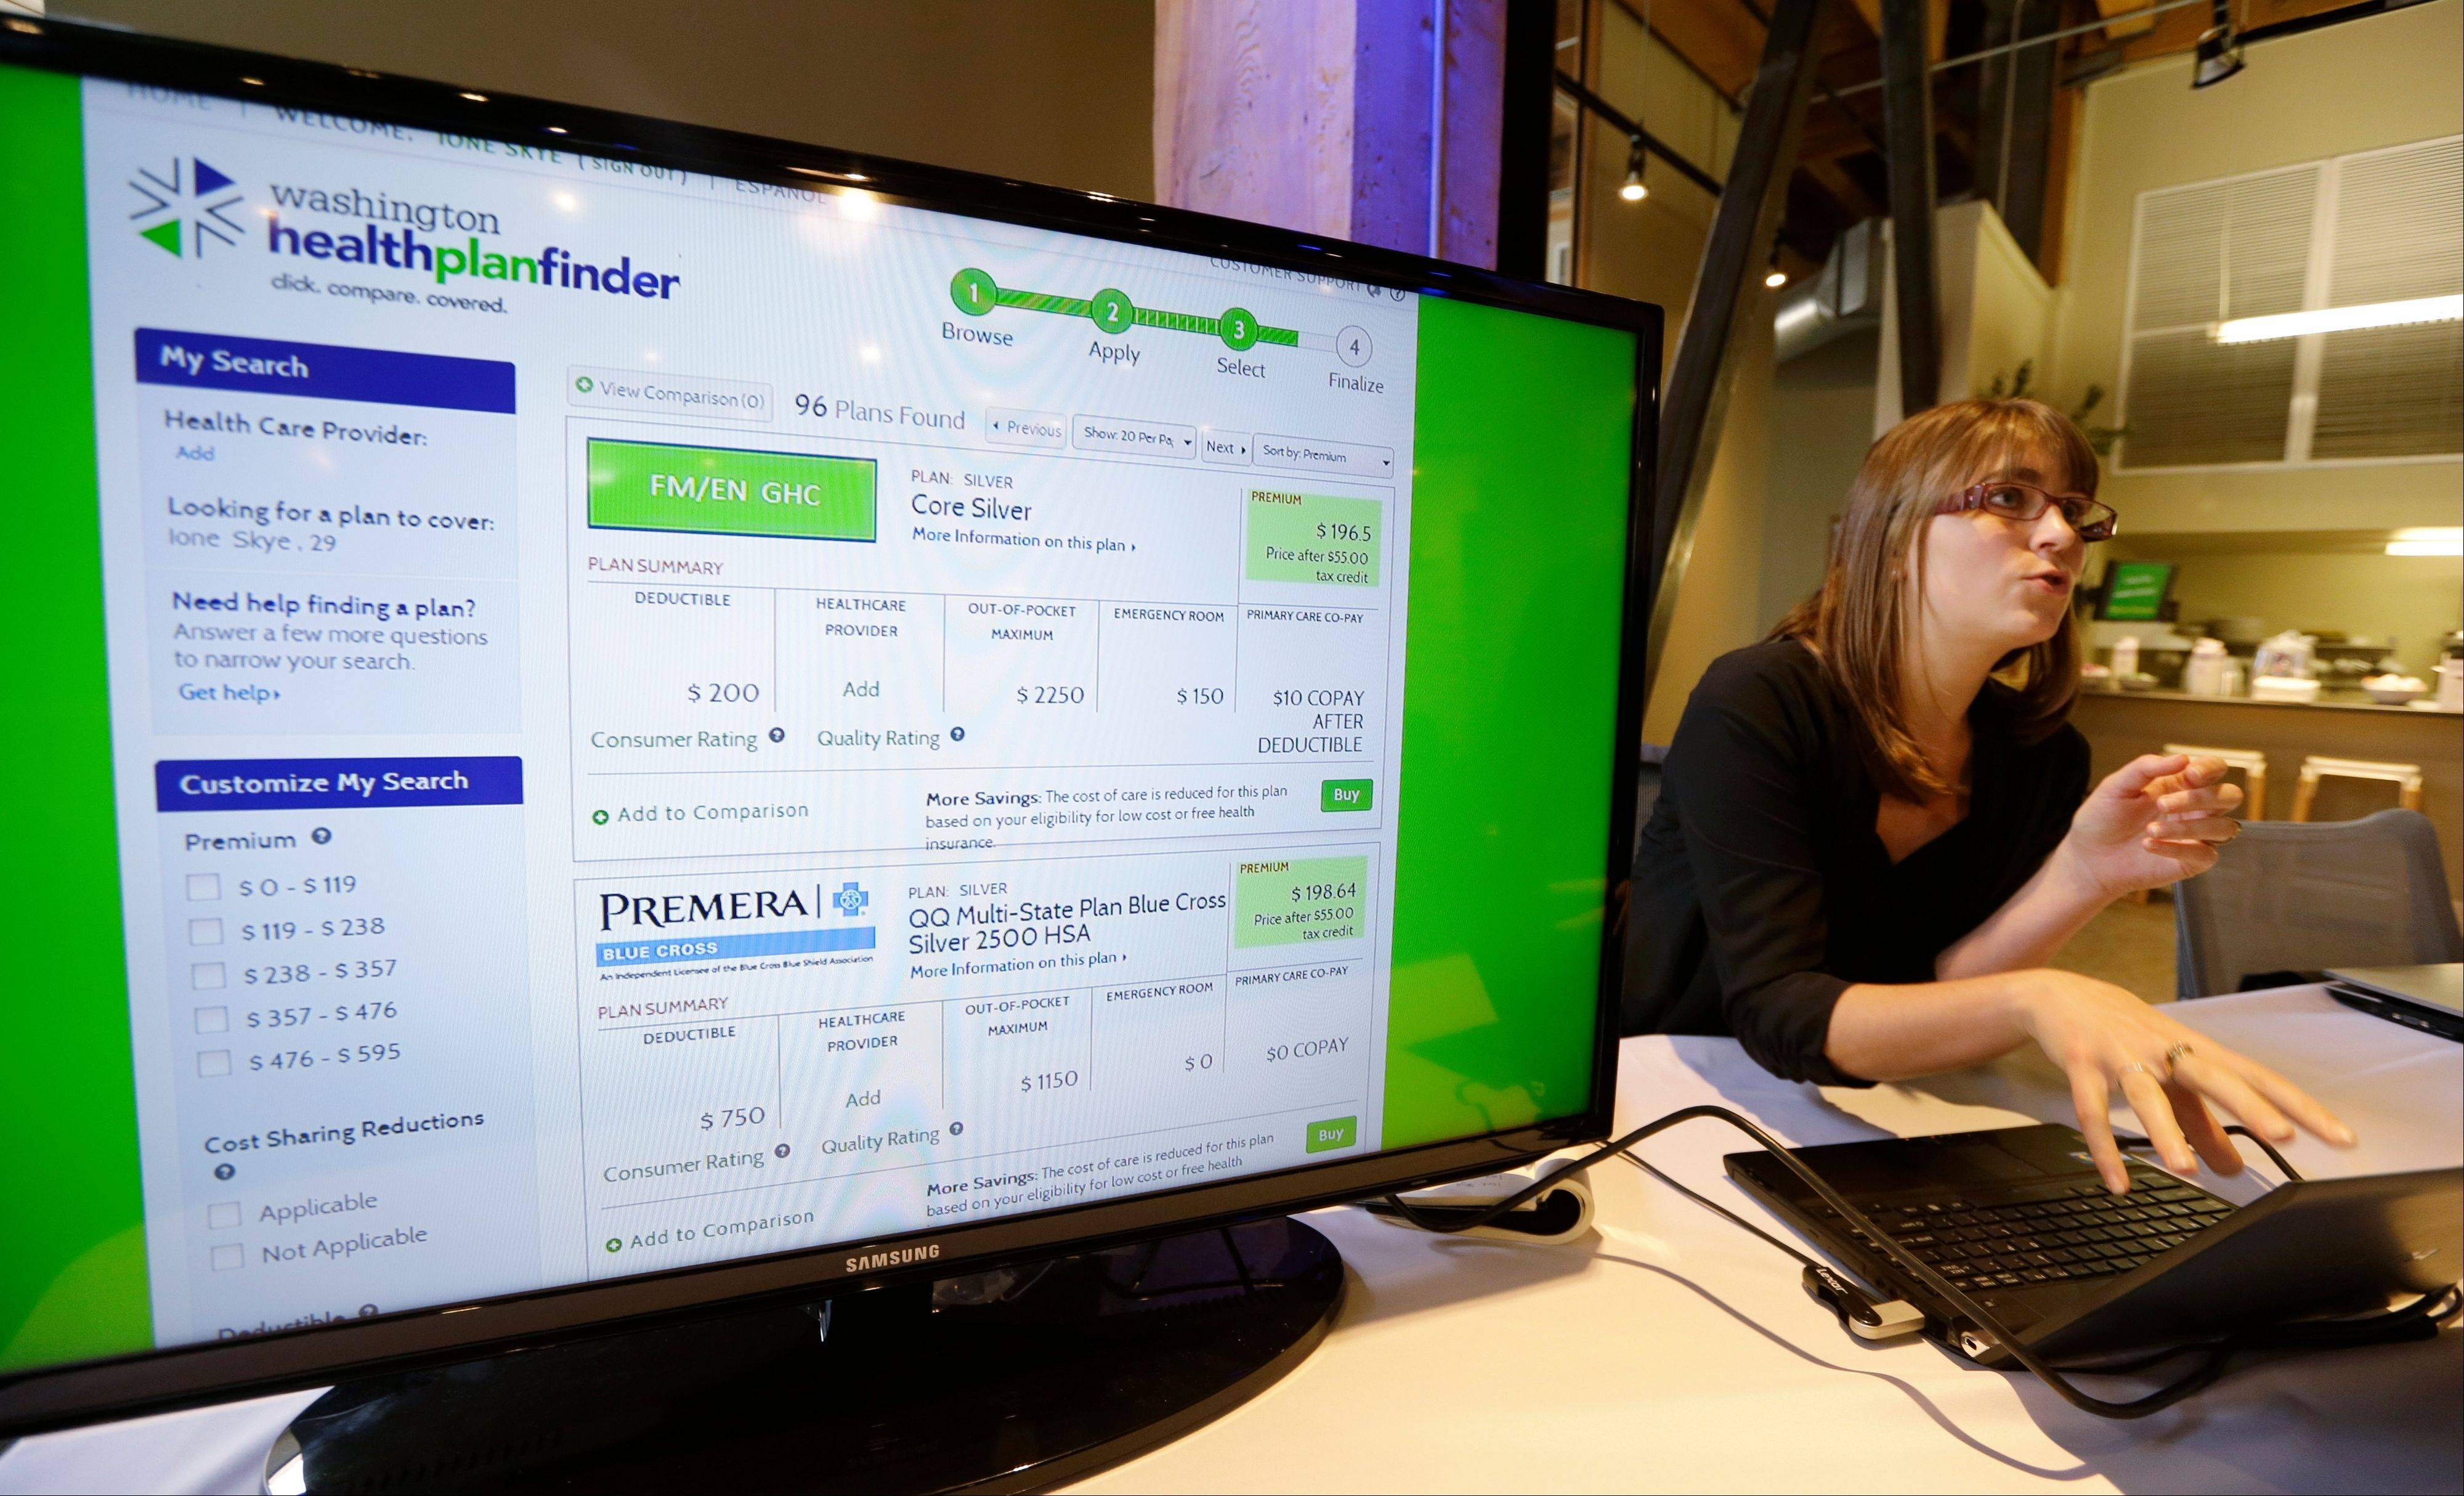 Nelly Kinsella demonstrates the Washington Healthplanfinder website, where consumers will be able to shop for health insurance, following a news conference Monday in Seattle. The new site, which allows consumers to compare and purchase health insurance plans and to see if they are eligible for government subsidies, is Washington state�s online answer to the Affordable Care Act, which is available to the public beginning Tuesday.